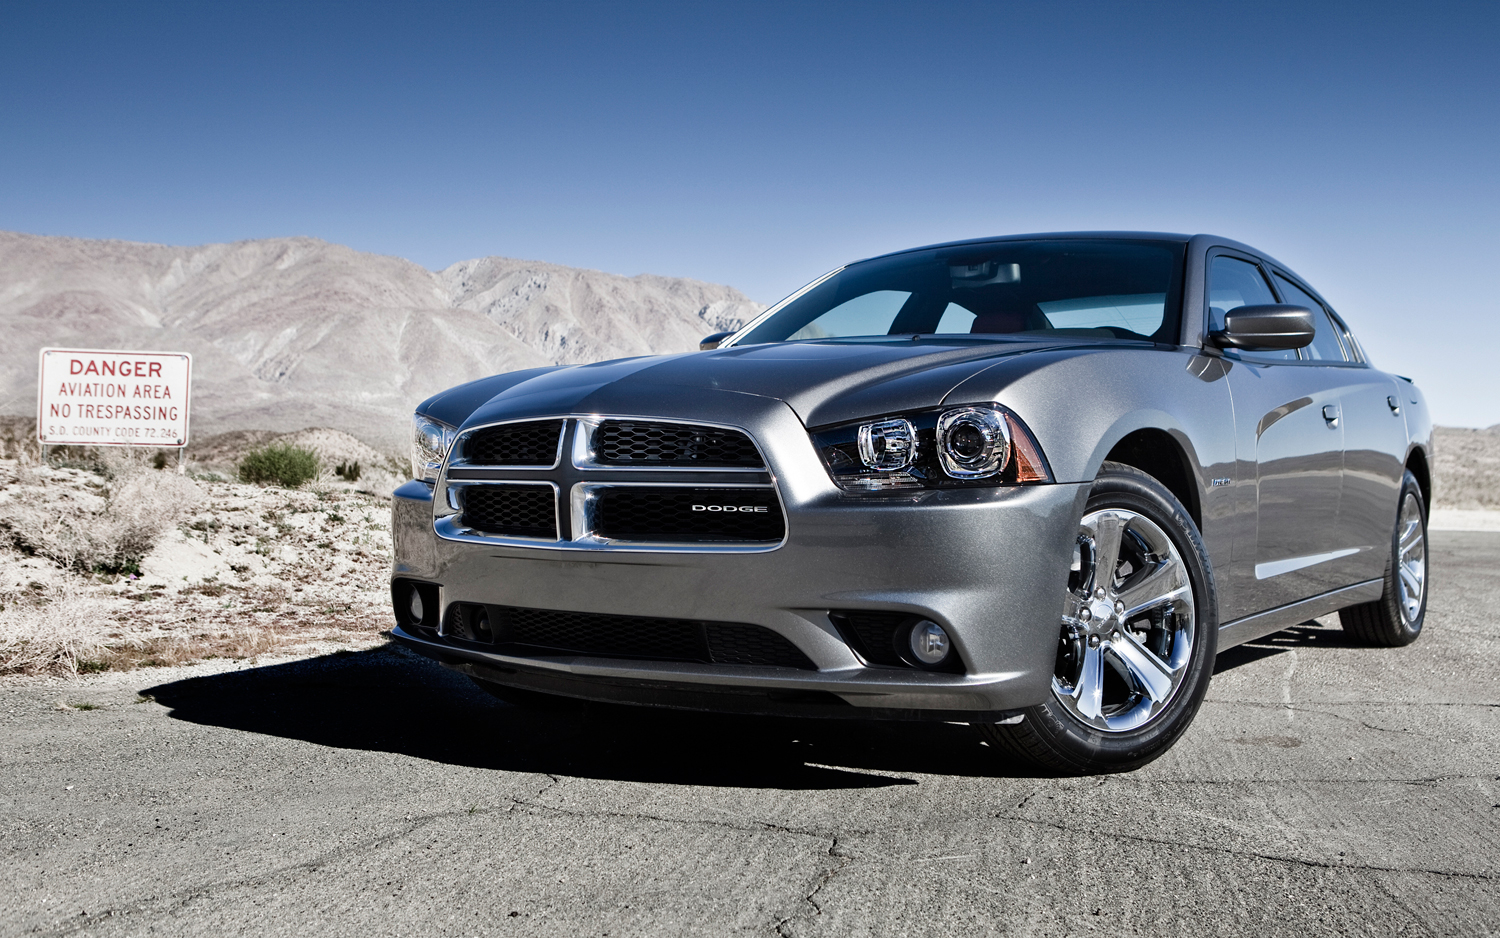 2012 Chrysler 300 Dodge Charger Rated At 19 31 Mpg With 8 Speed